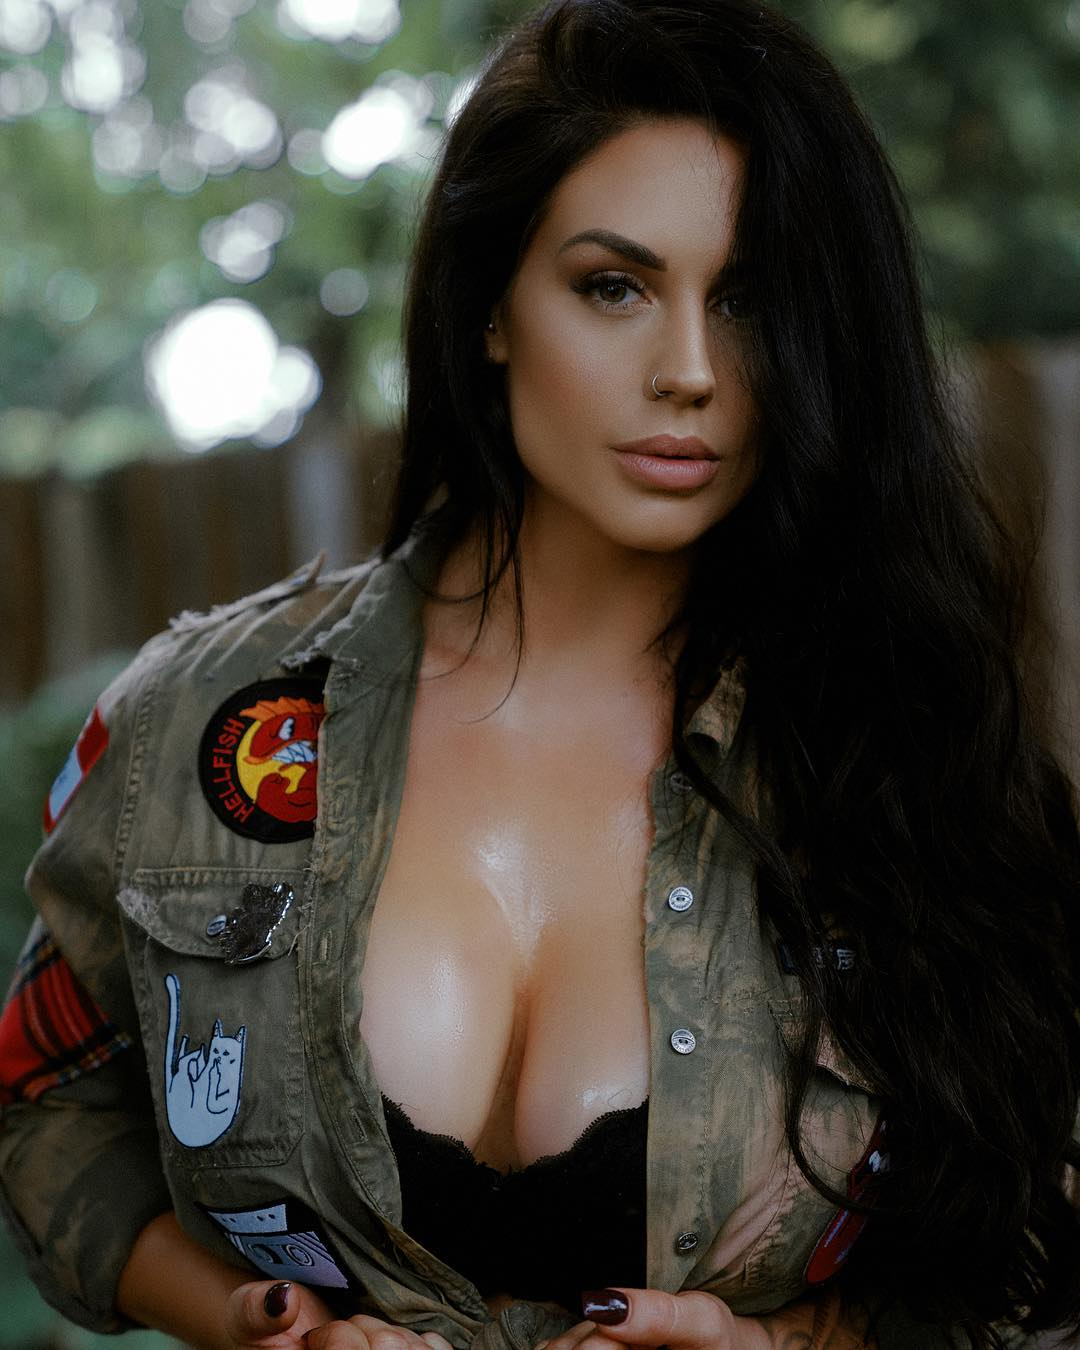 49 Hot Pictures Of Kaitlyn From Wwe Will Leave You Gasping -5185